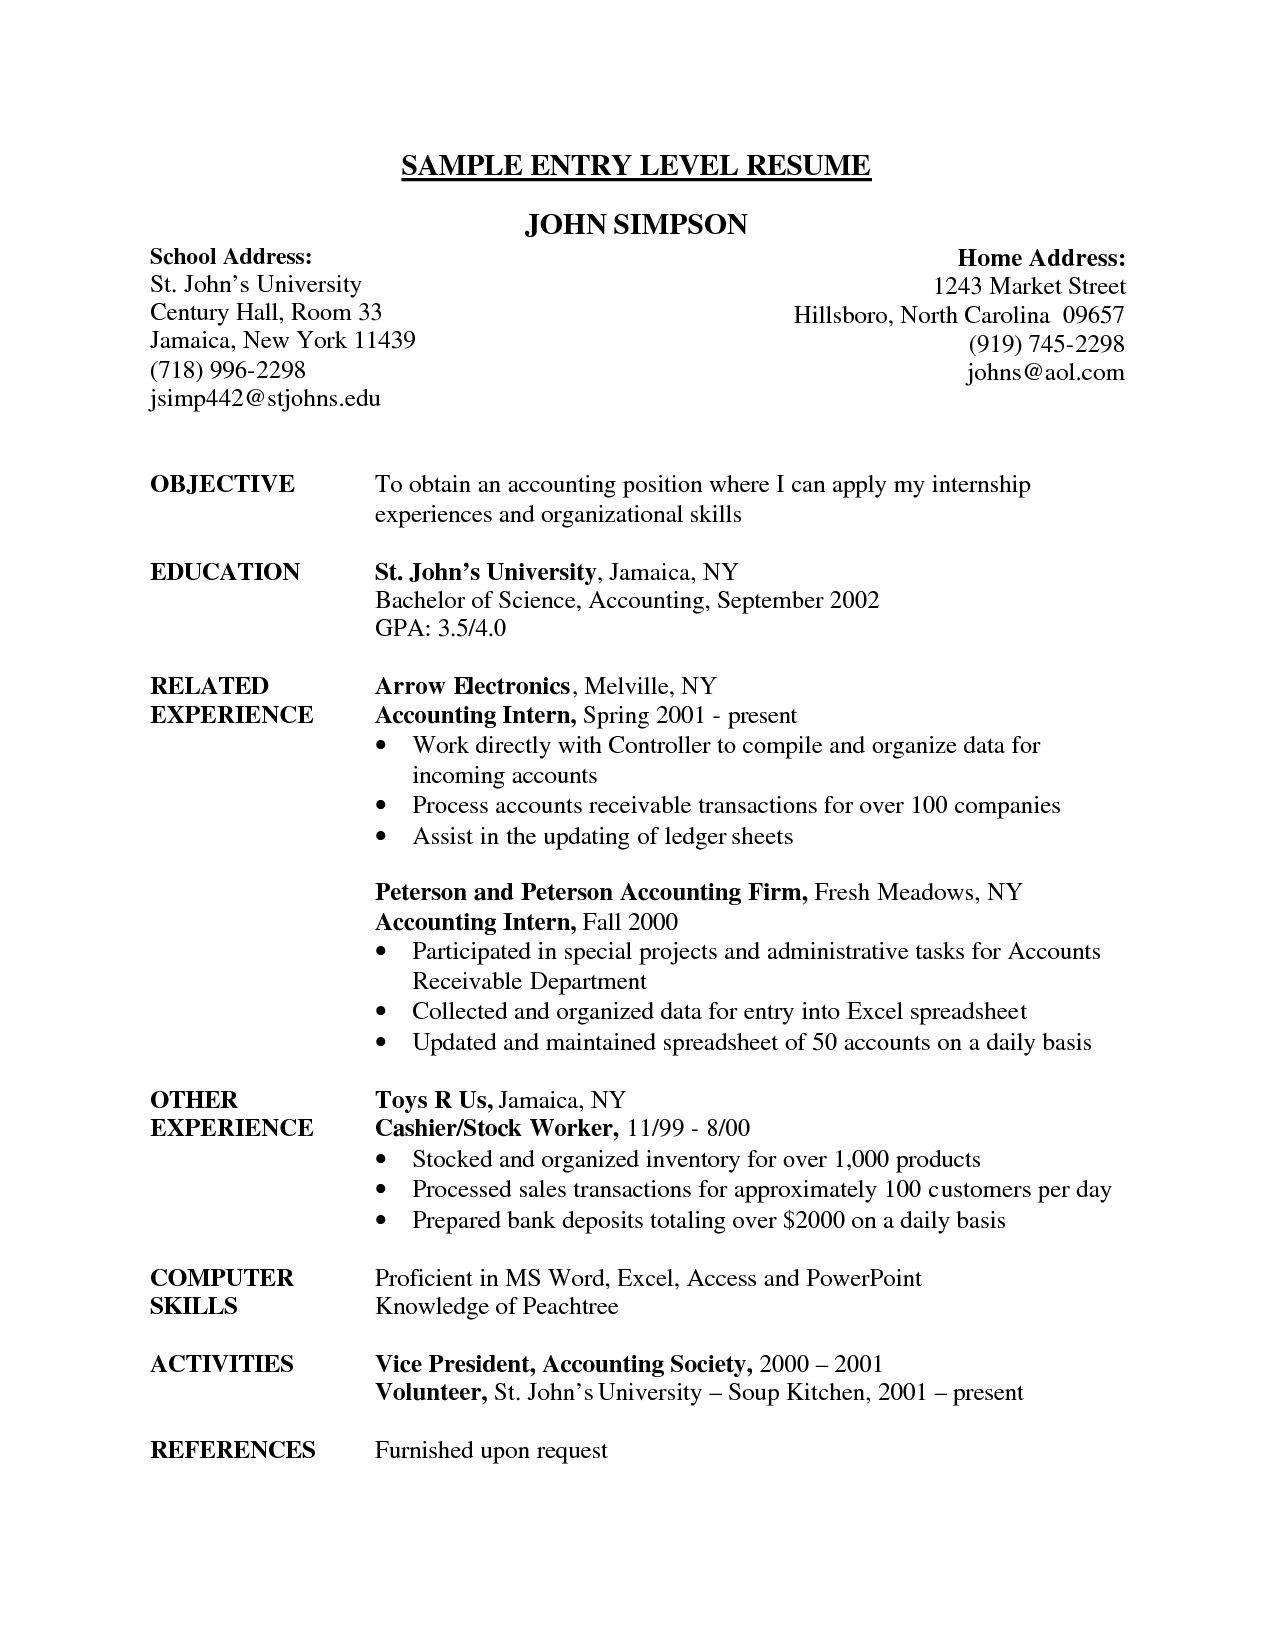 Social Media Resume Sample Entry Level Resume Example Entry Level Job Resume Examples